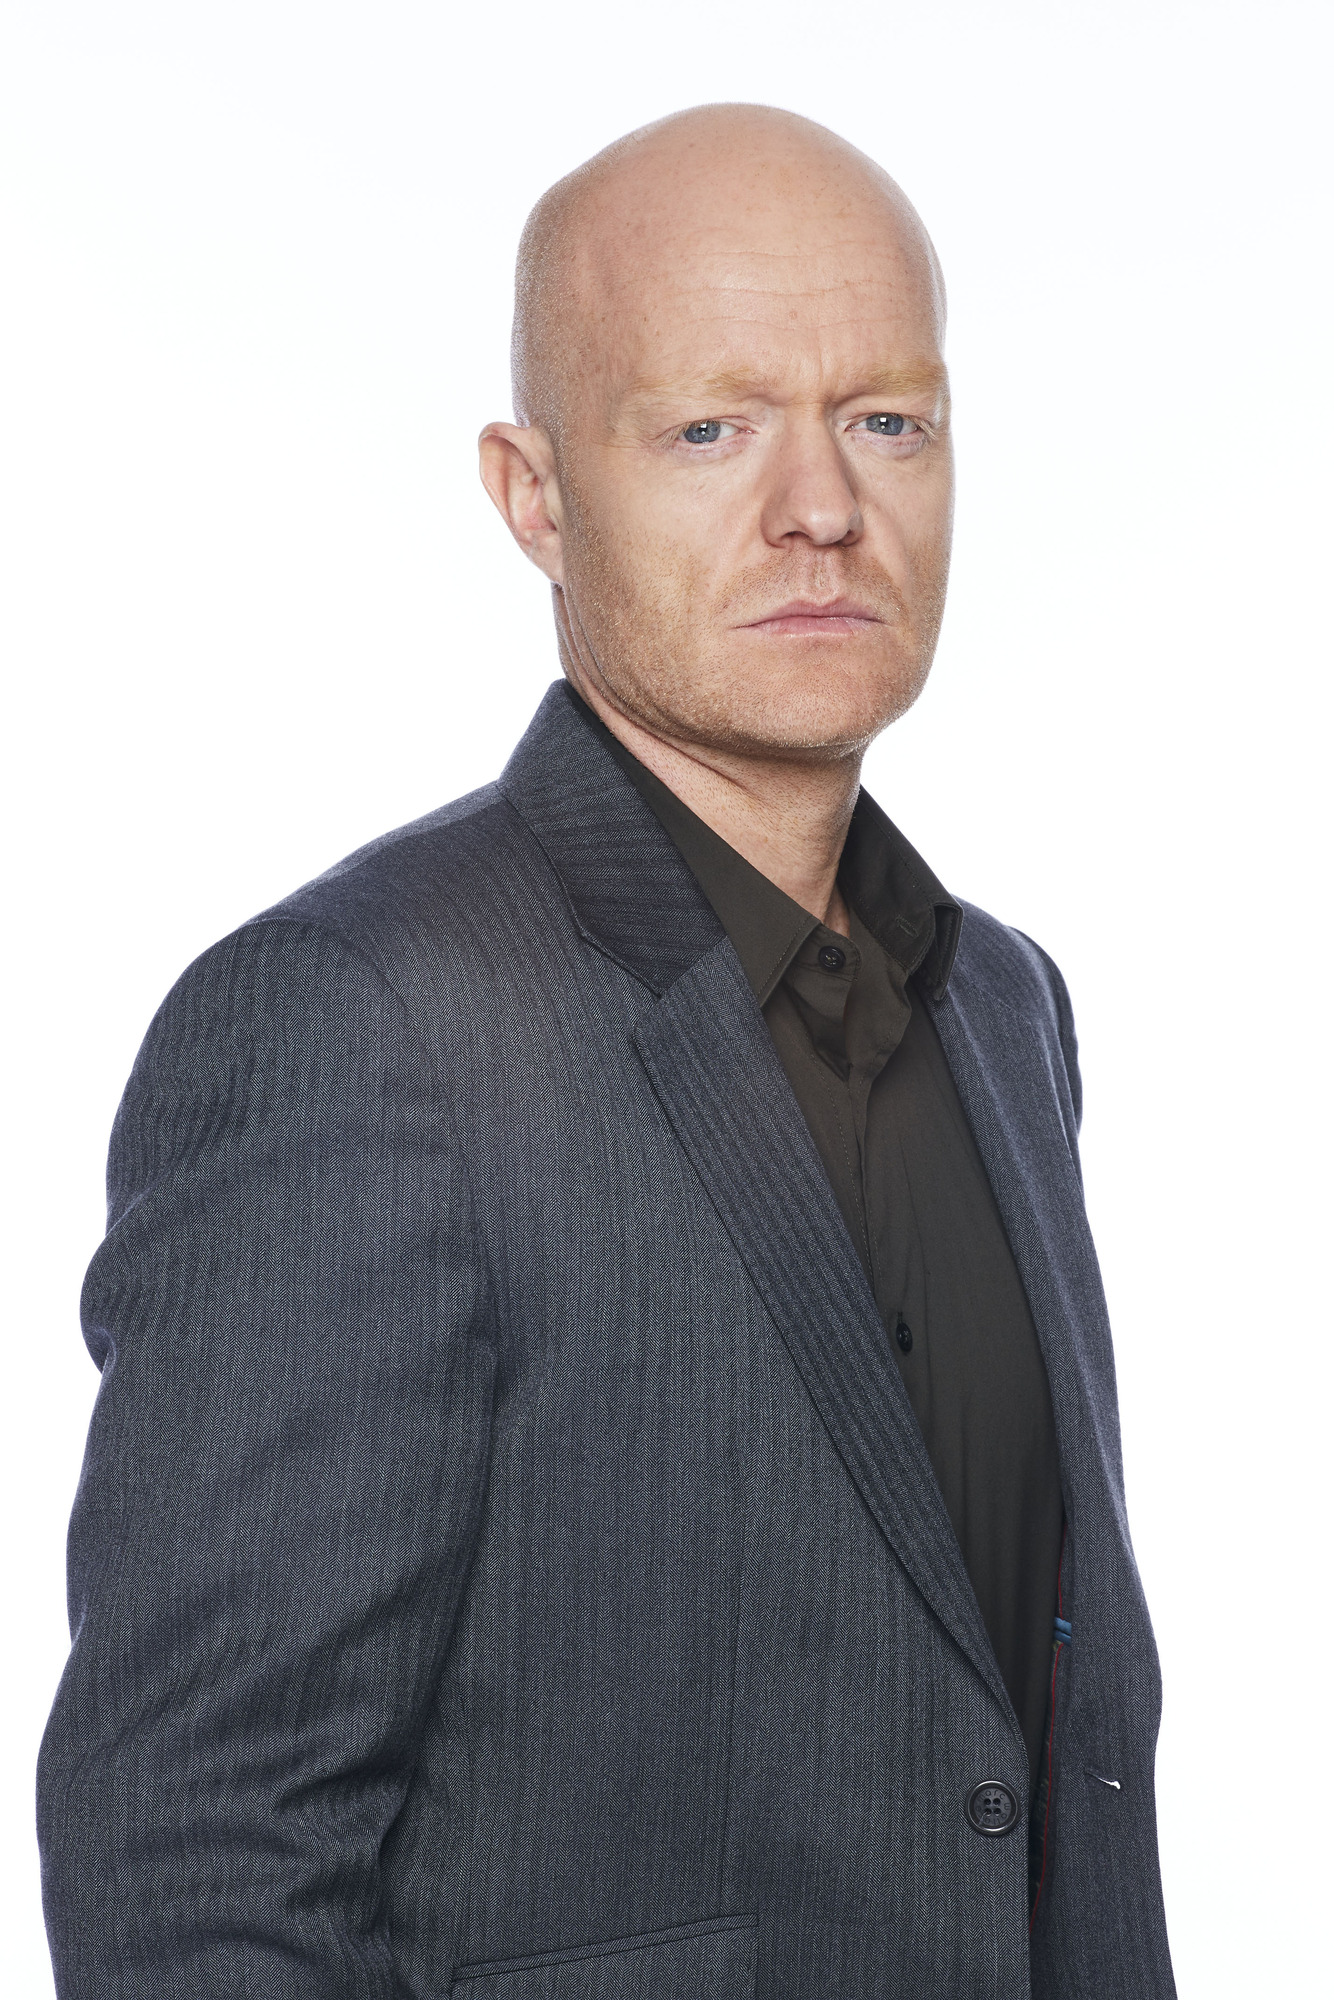 Max Branning played by Jake Wood (Nicky Johnston)